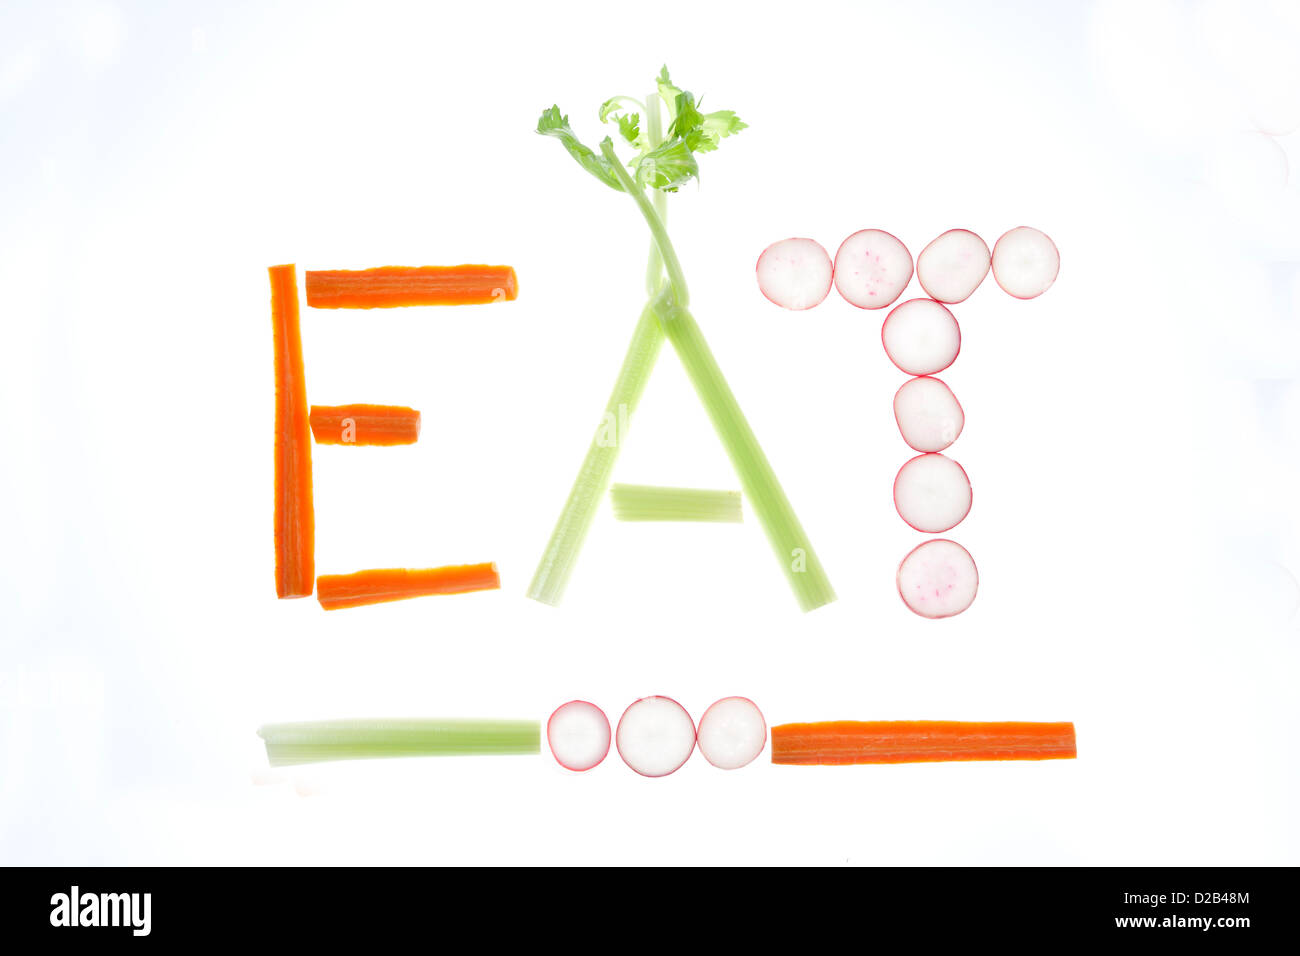 A conceptual image of carrots, celery, and radishes spelling out eat. - Stock Image